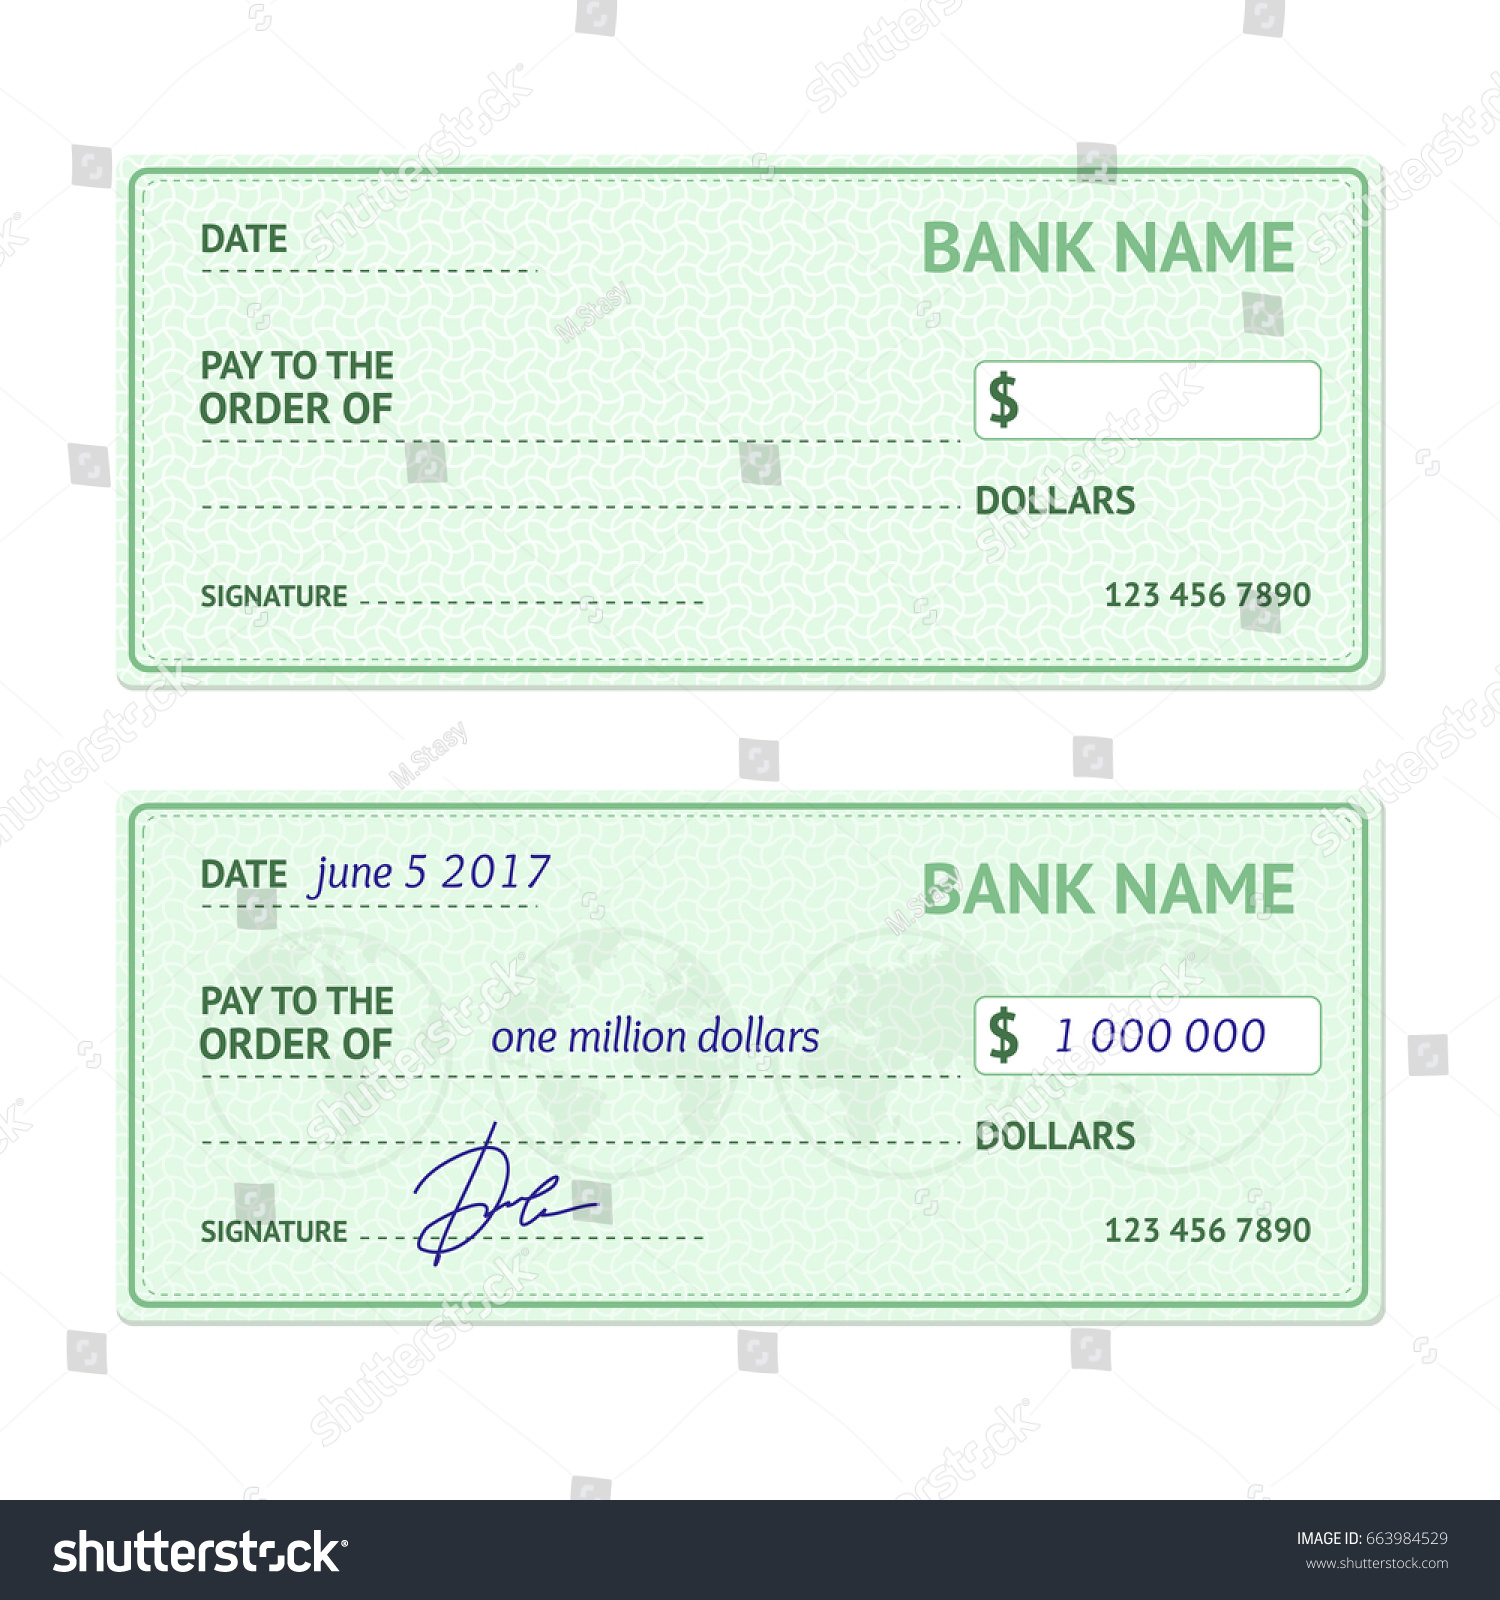 template blank classic bank check business stock illustration